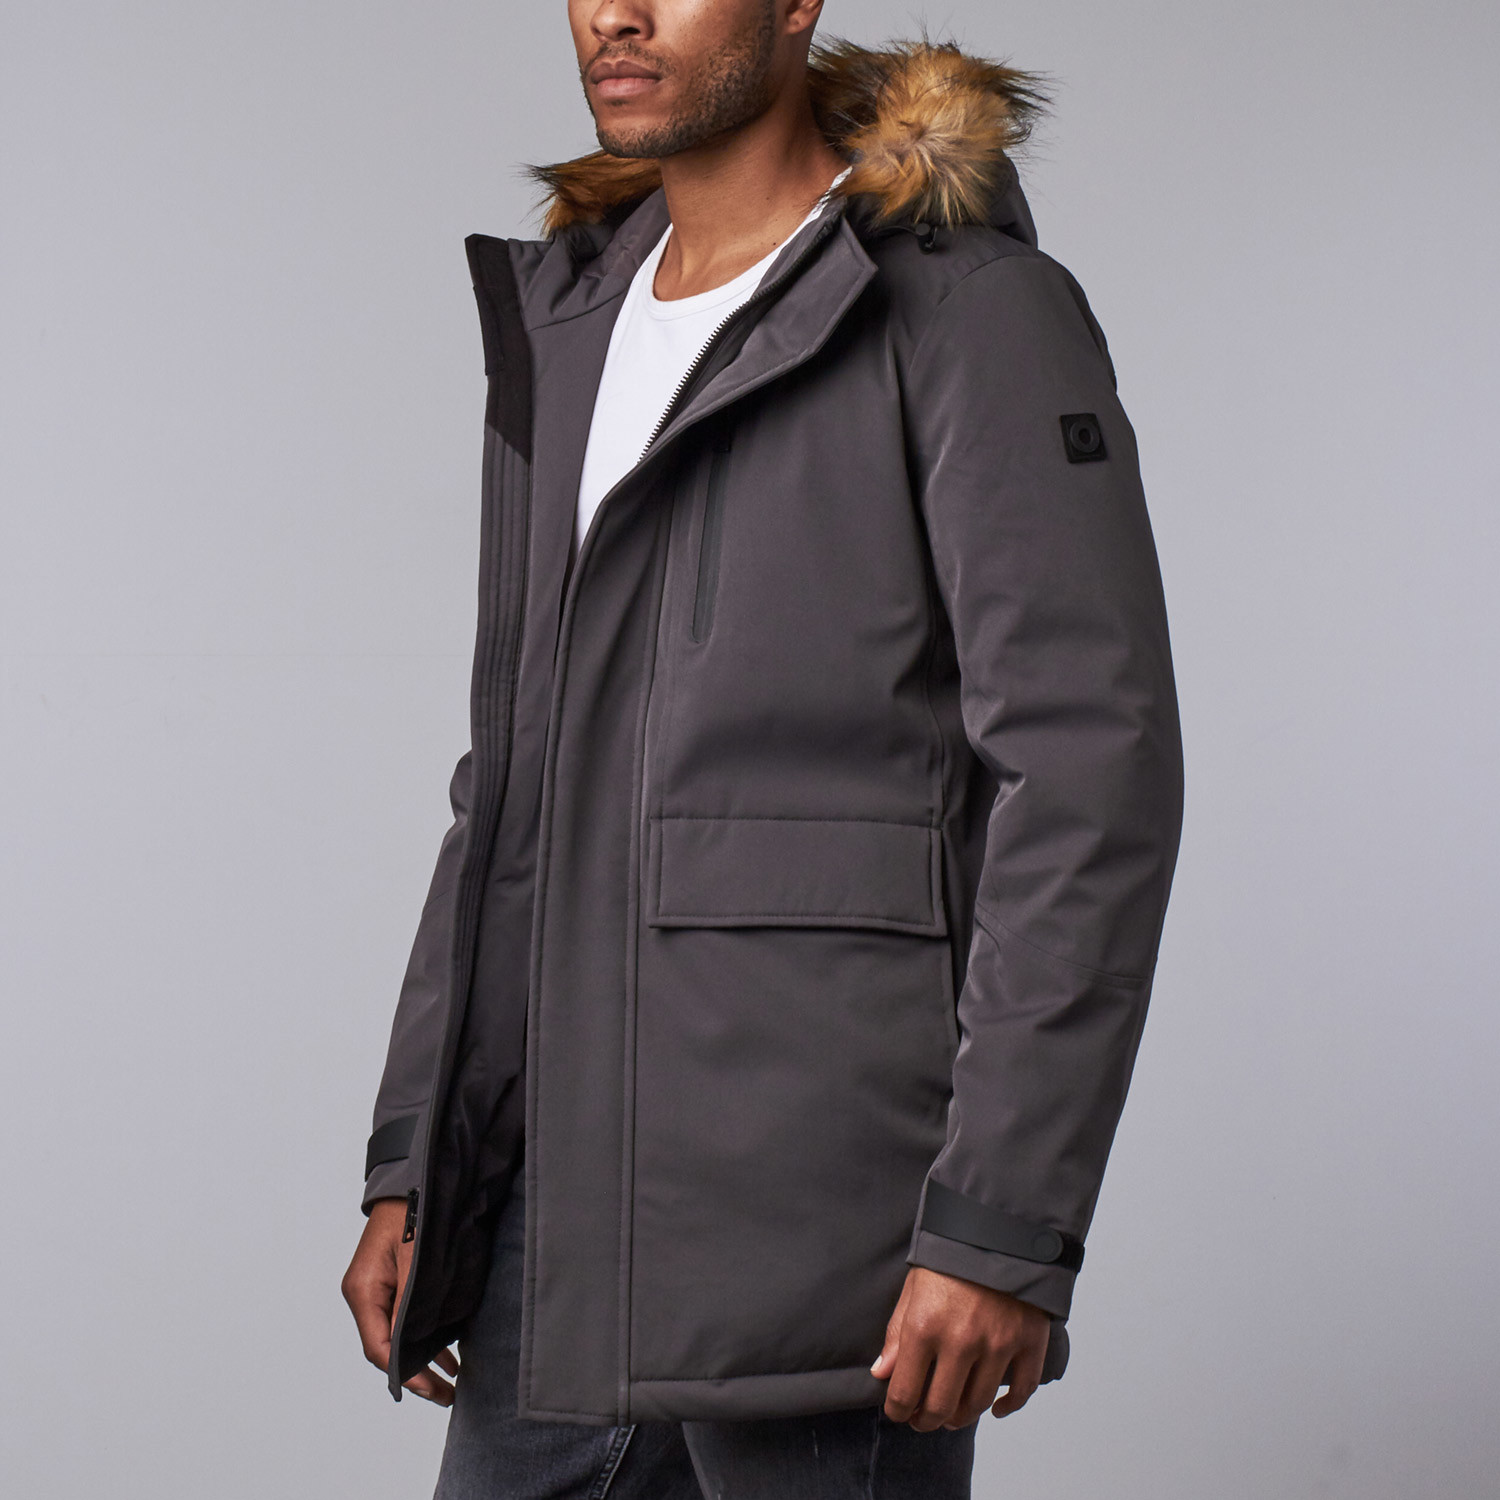 1c8aa39f6 Tech Down Parka // Charcoal (S) - OROBOS - Touch of Modern